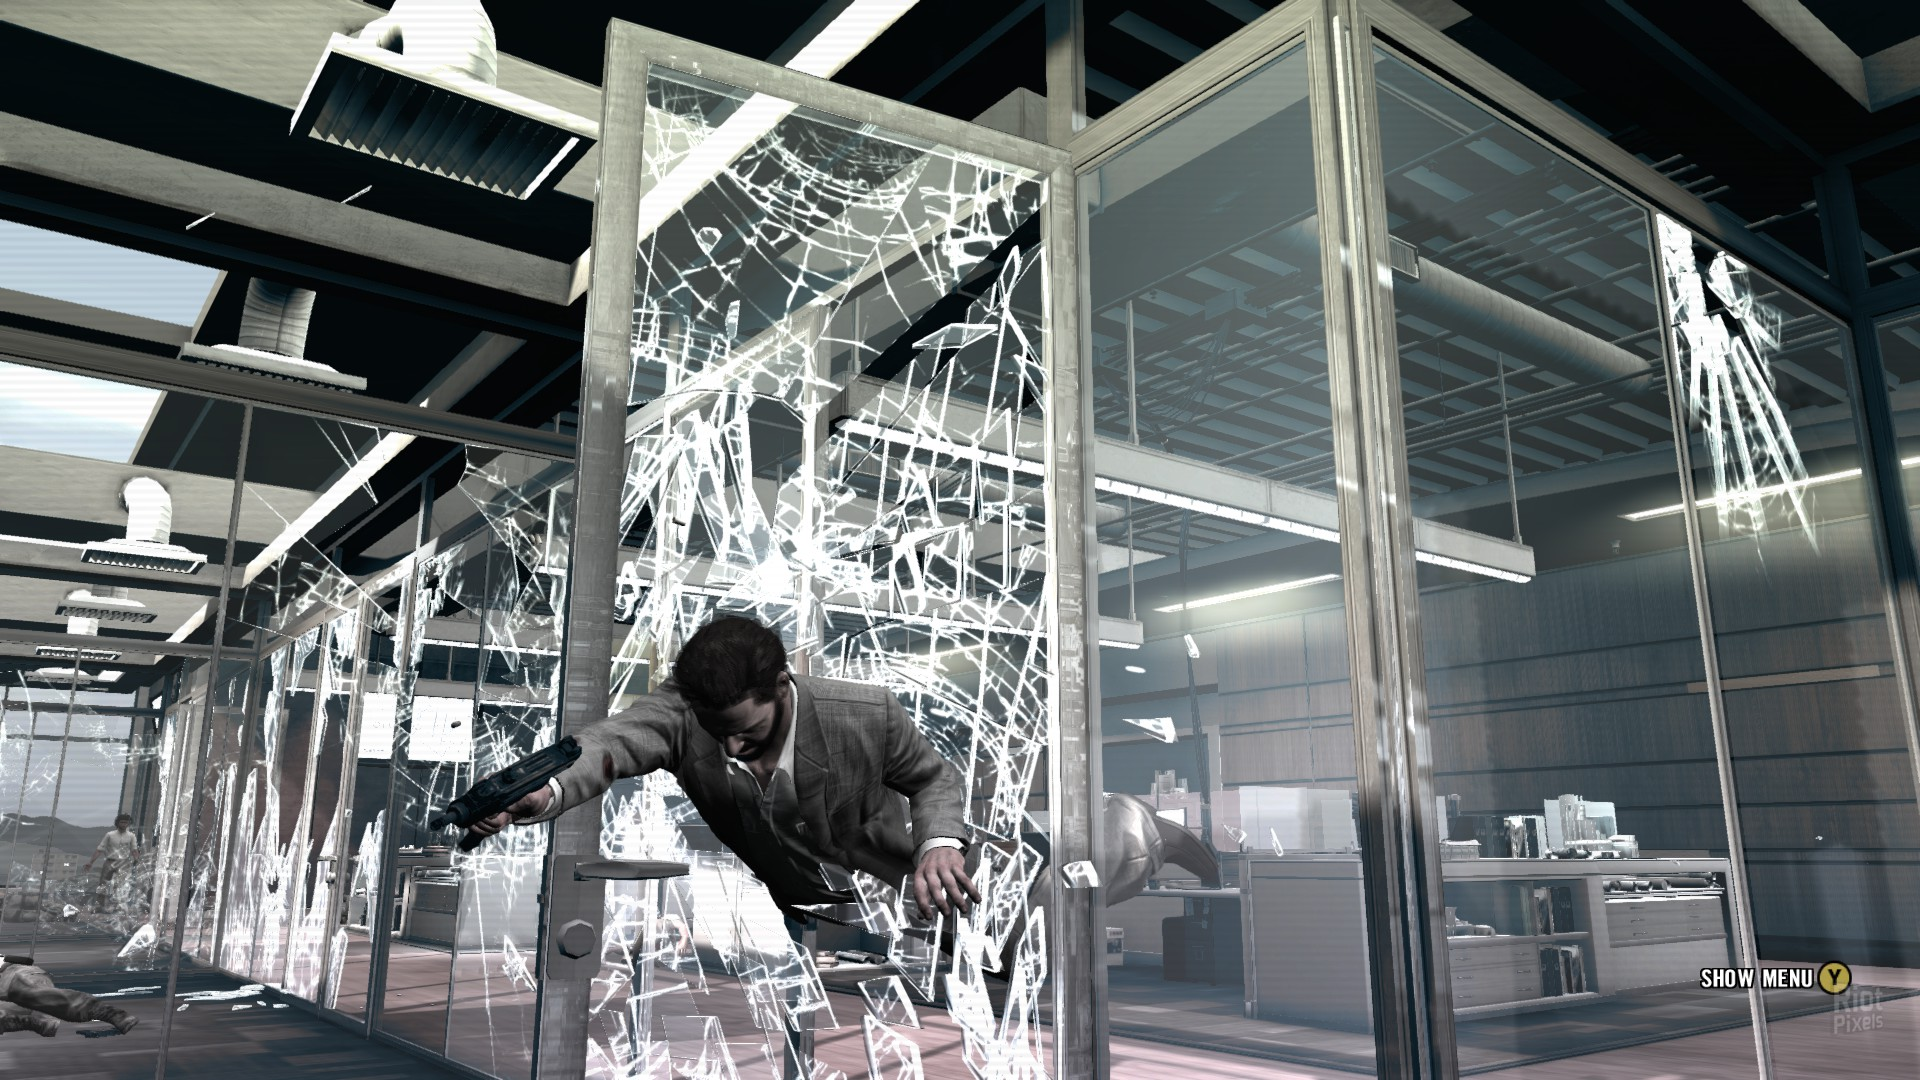 Max Payne 3: Complete Edition [v.1.0.0.196] (2012) PC | RePack by FitGirl - Скриншот 1